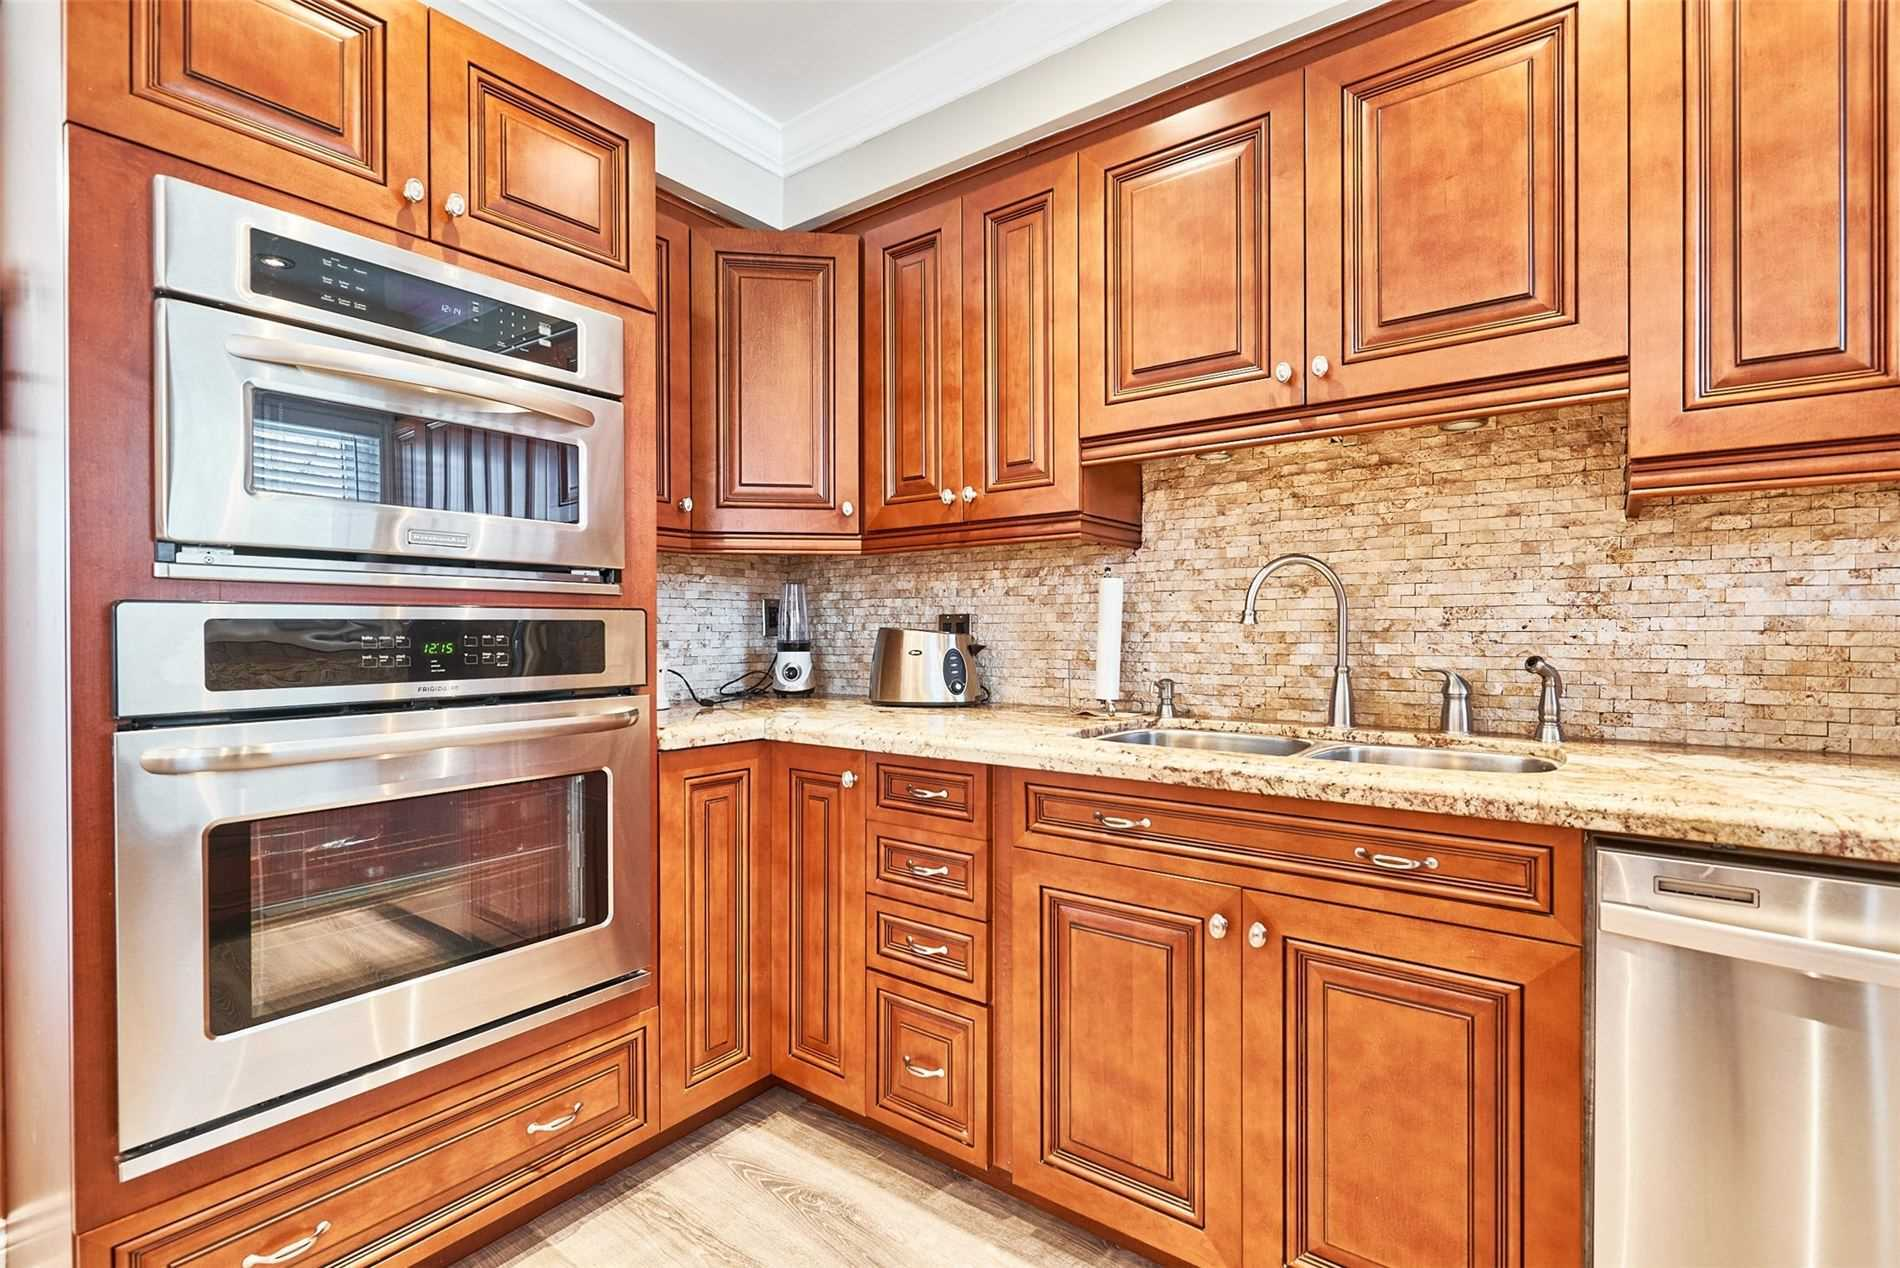 Image 3 of 33 showing inside of 3 Bedroom Condo Townhouse 2-Storey for Sale at 33 Clover Ridge Dr W Unit# 9, Ajax L1S3M5